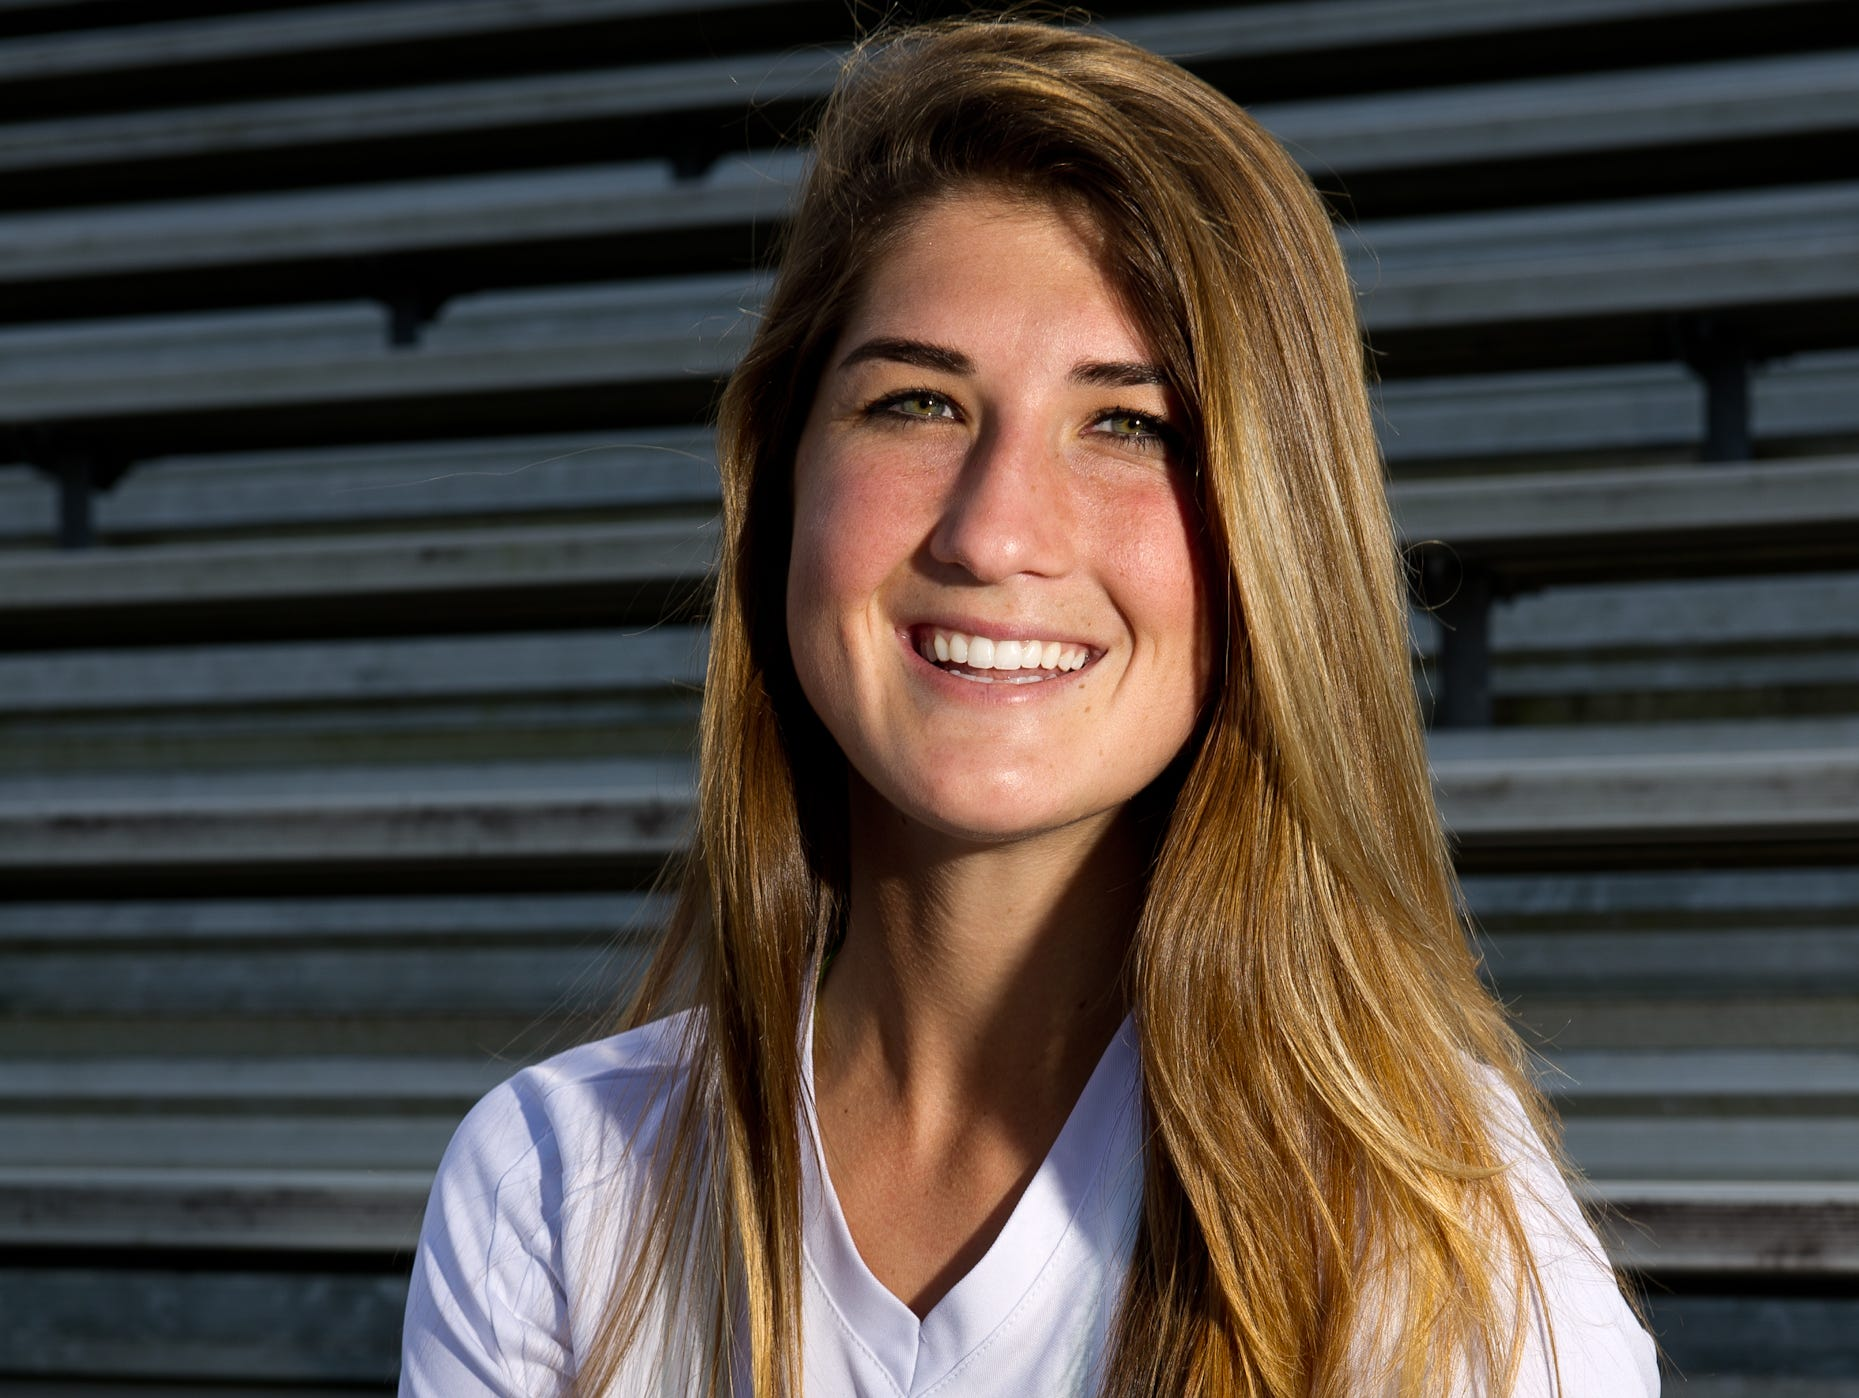 Fort Myer High School girls soccer player Bailey Pombrio poses for a photograph at Fort Myers High School, Tuesday, January 13, 2015. Bailey is Fort Myers high schools new all-time leading goal scorer. (Logan Newell/Special to the News-Press)